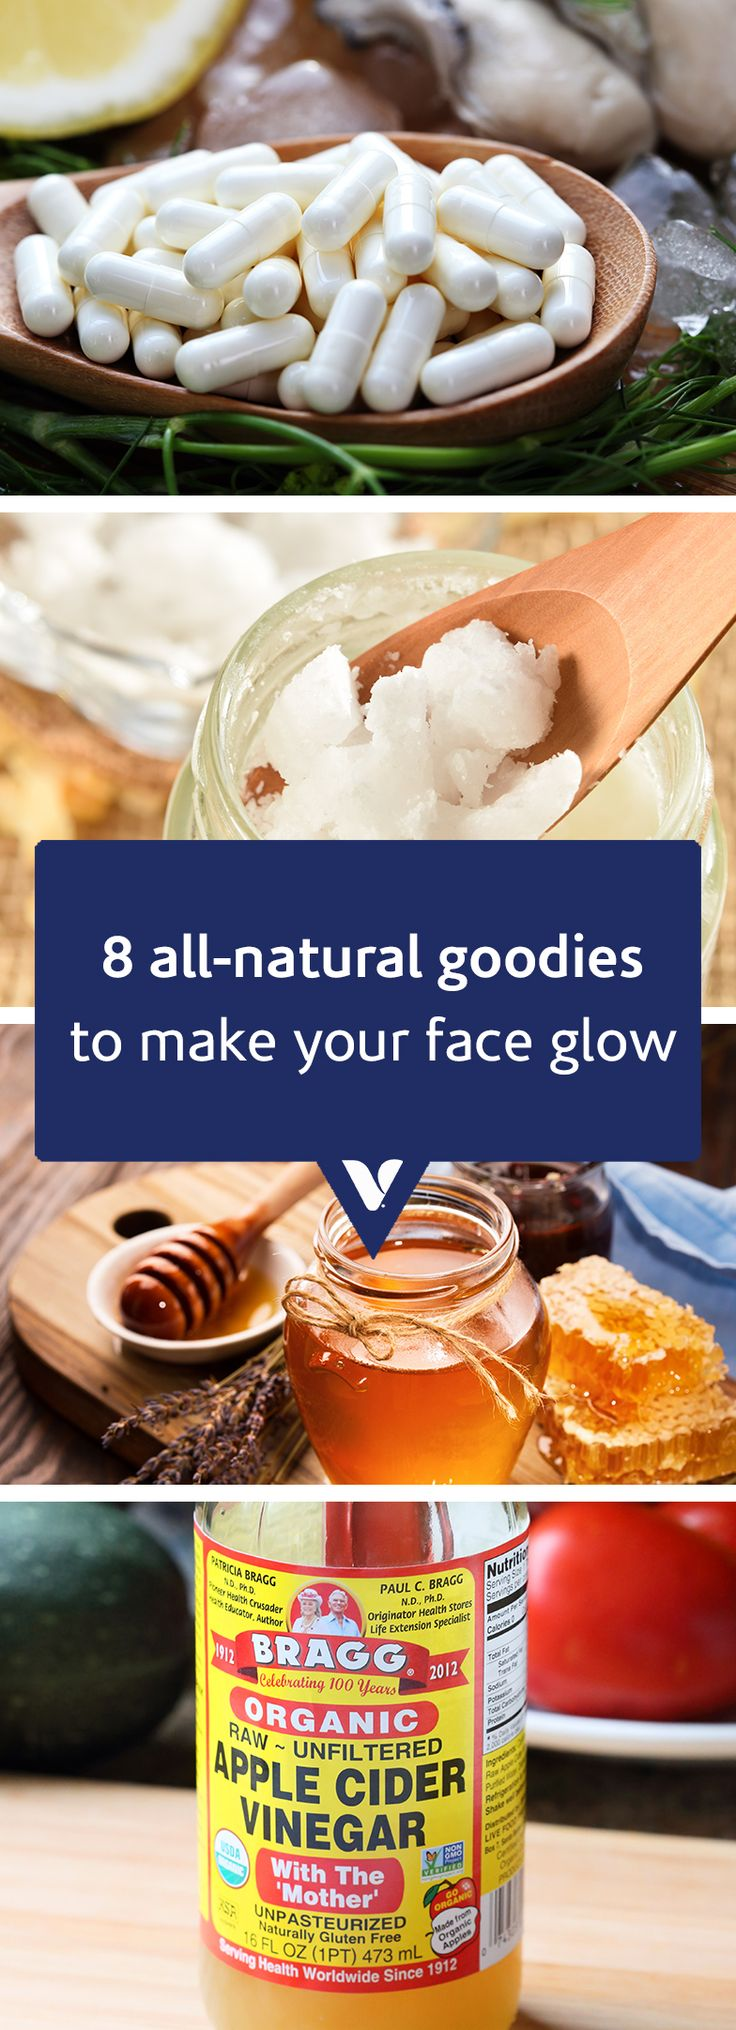 8 all natural goodies to make your face glow